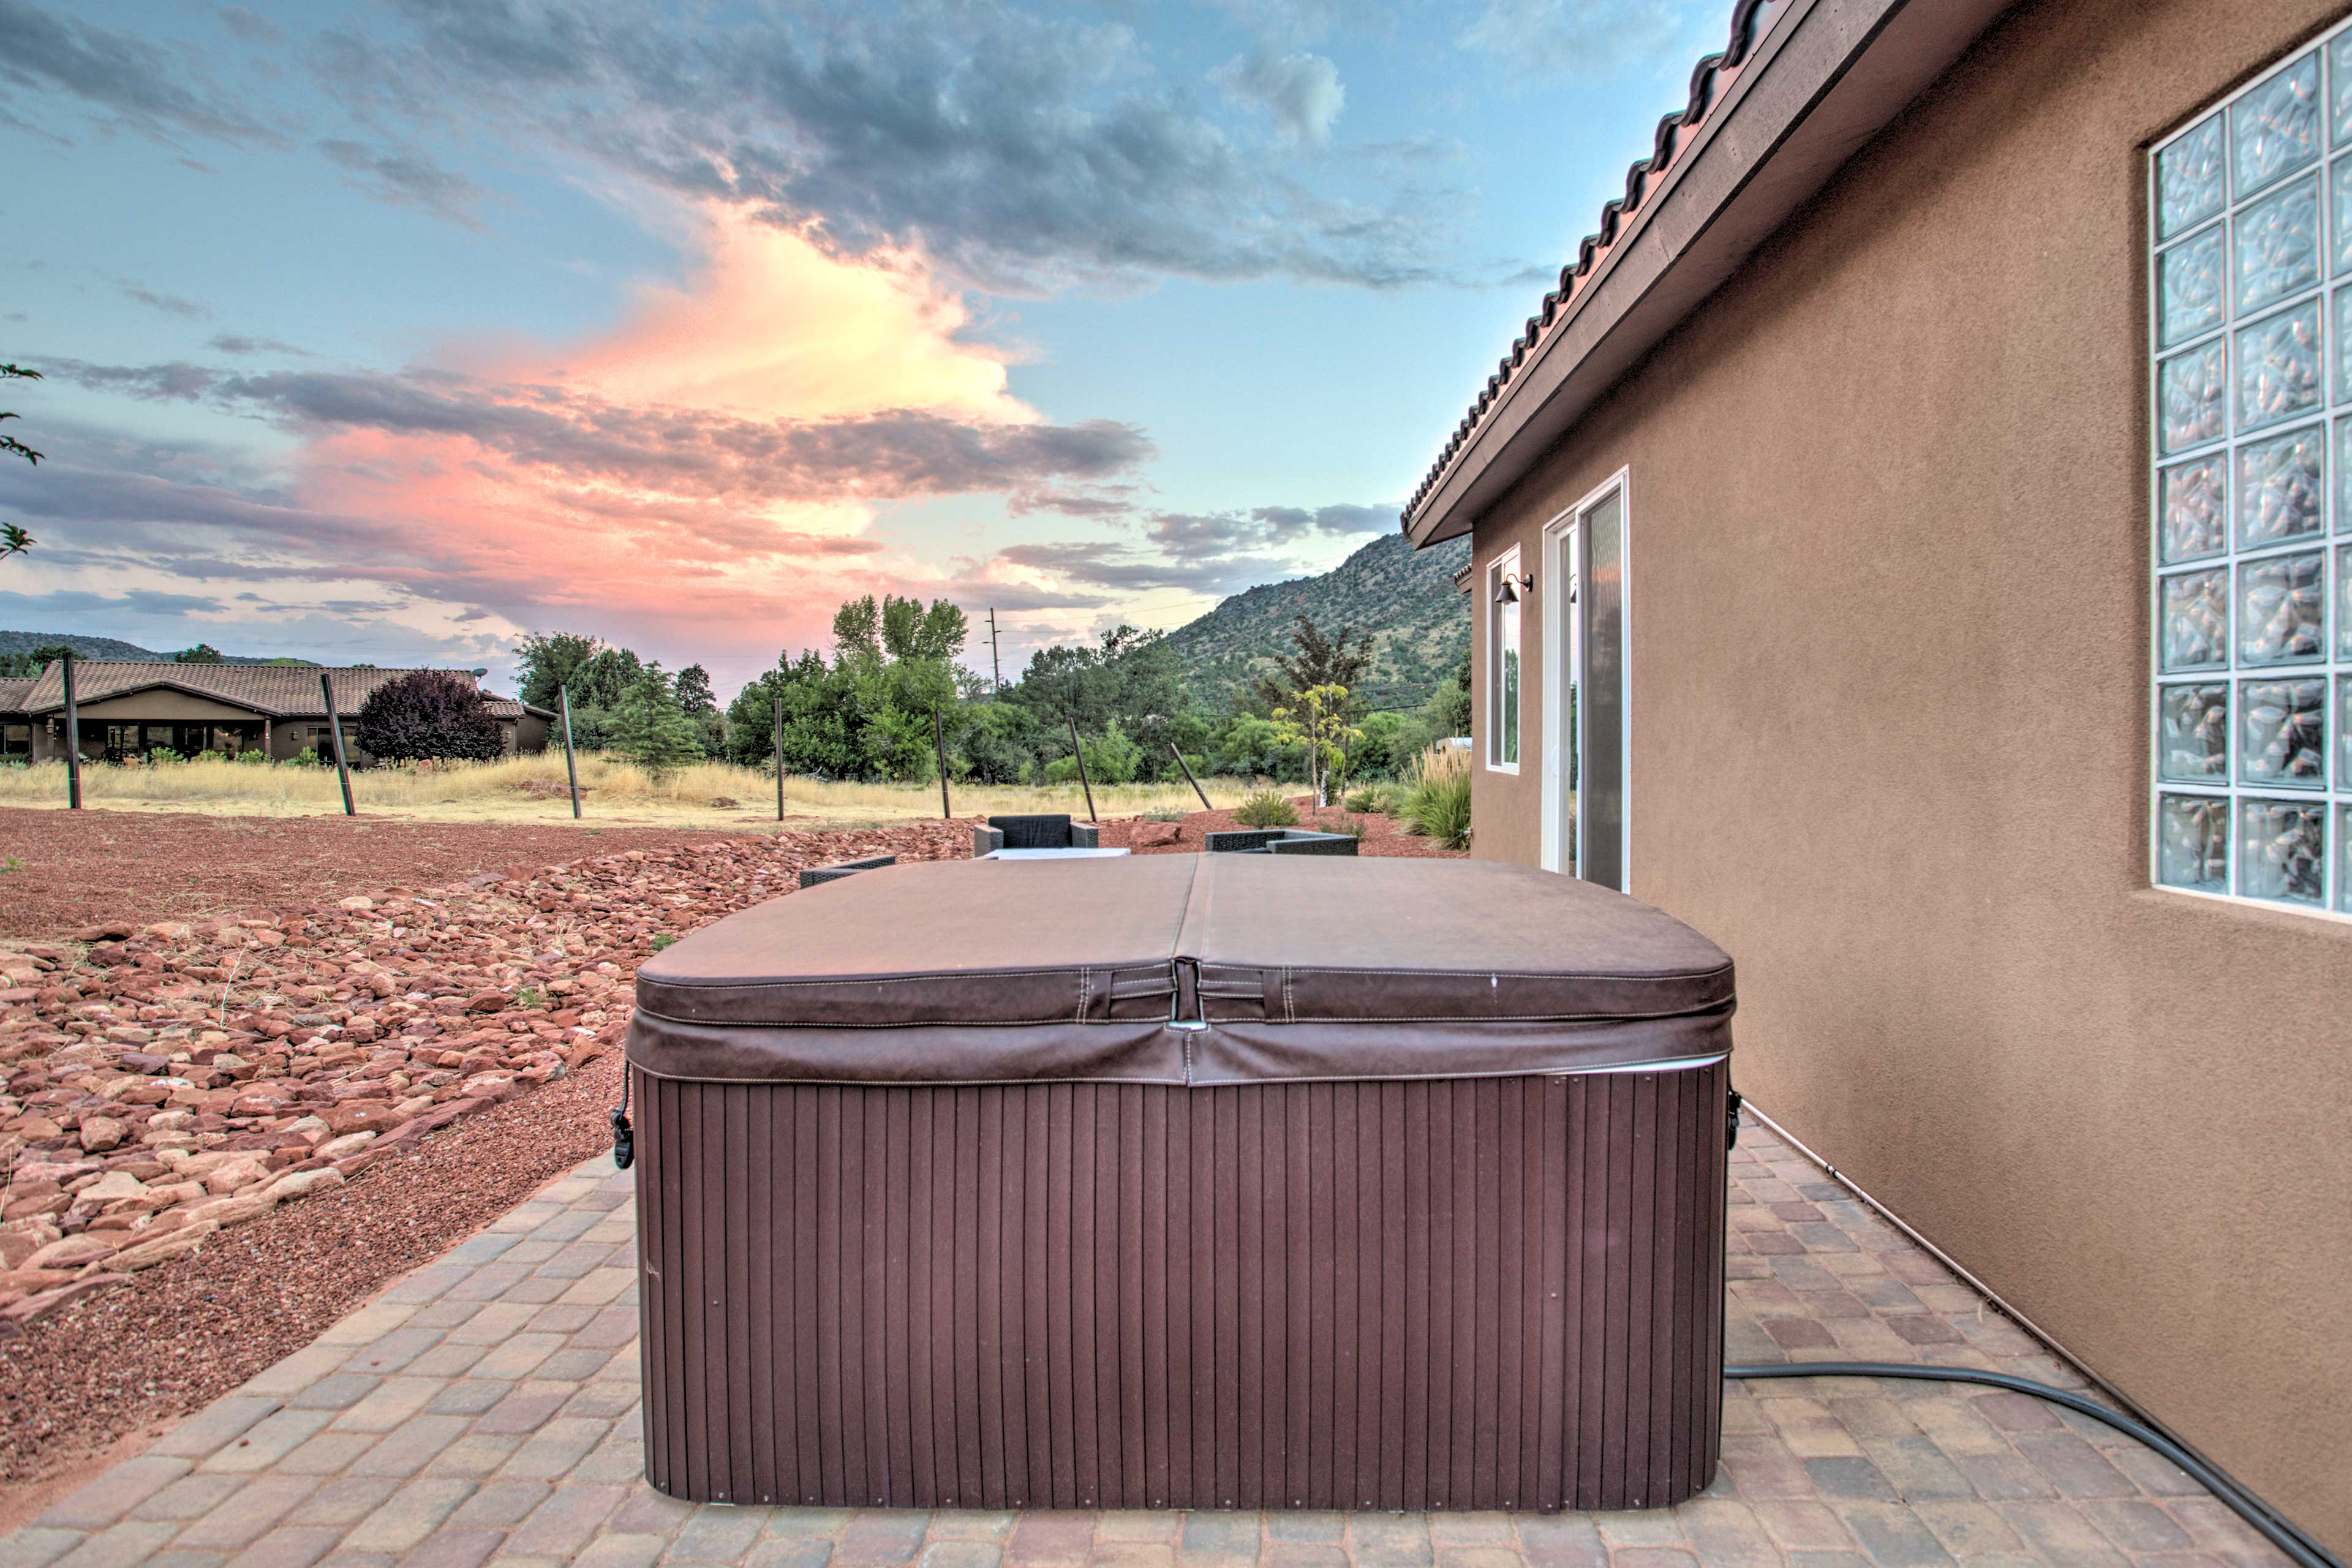 Catch the sunset from your private hot tub.